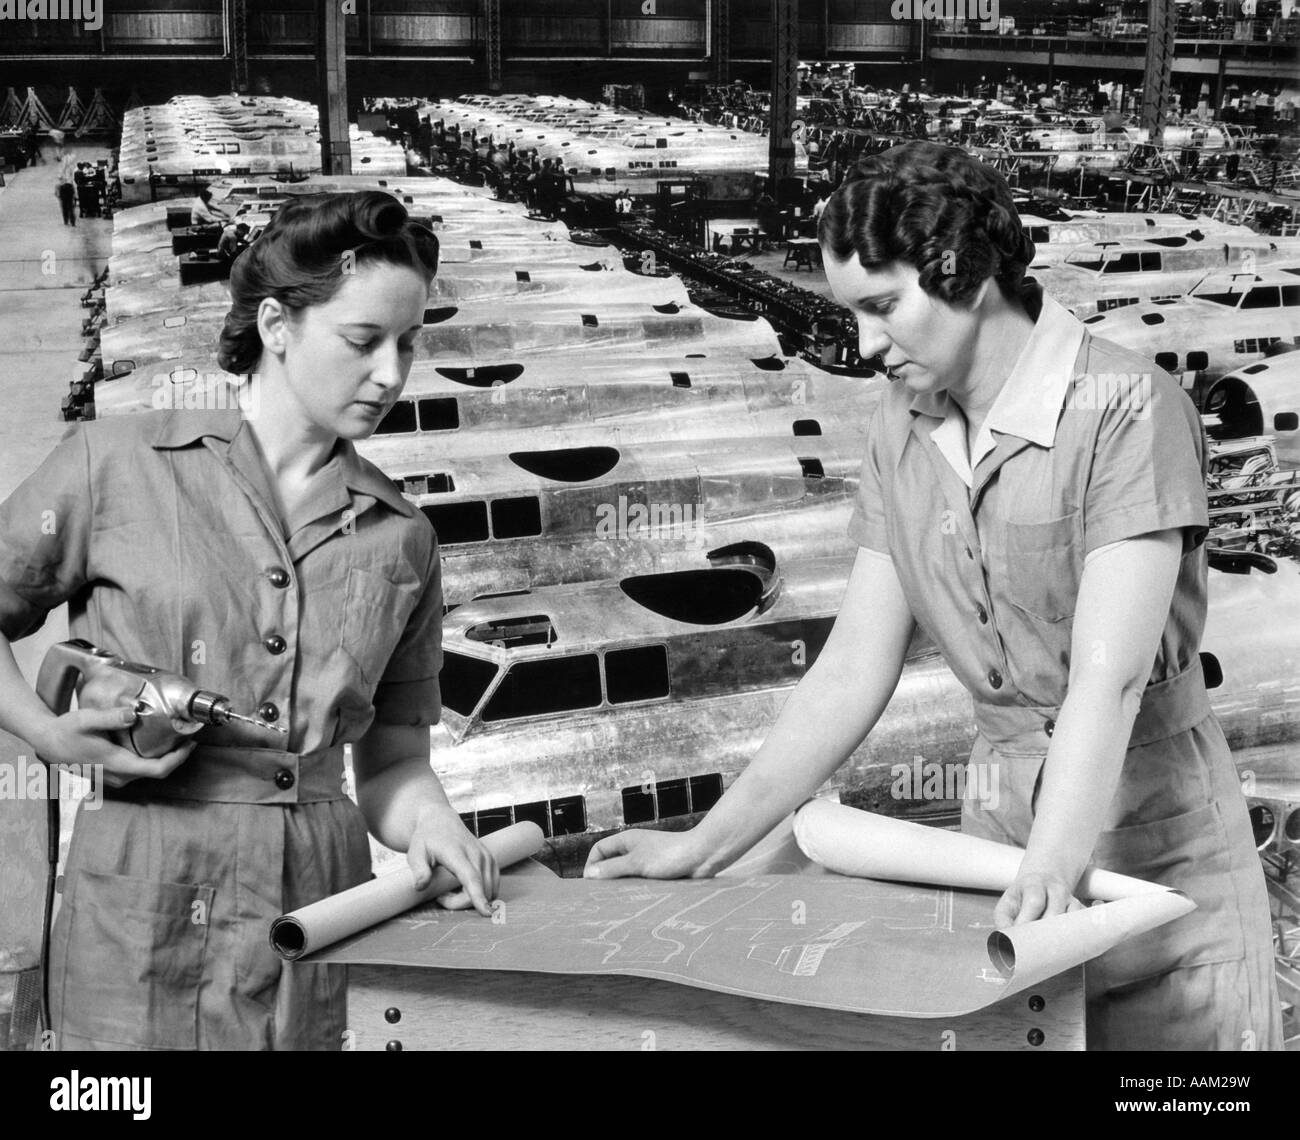 WOMEN WORKERS BLUEPRINTS FACTORY 1940s ROSIE RIVETER WOMAN WARTIME WORKER WW2 WWII WORLD WAR 2 AIRPLANE AIRPLANES - Stock Image